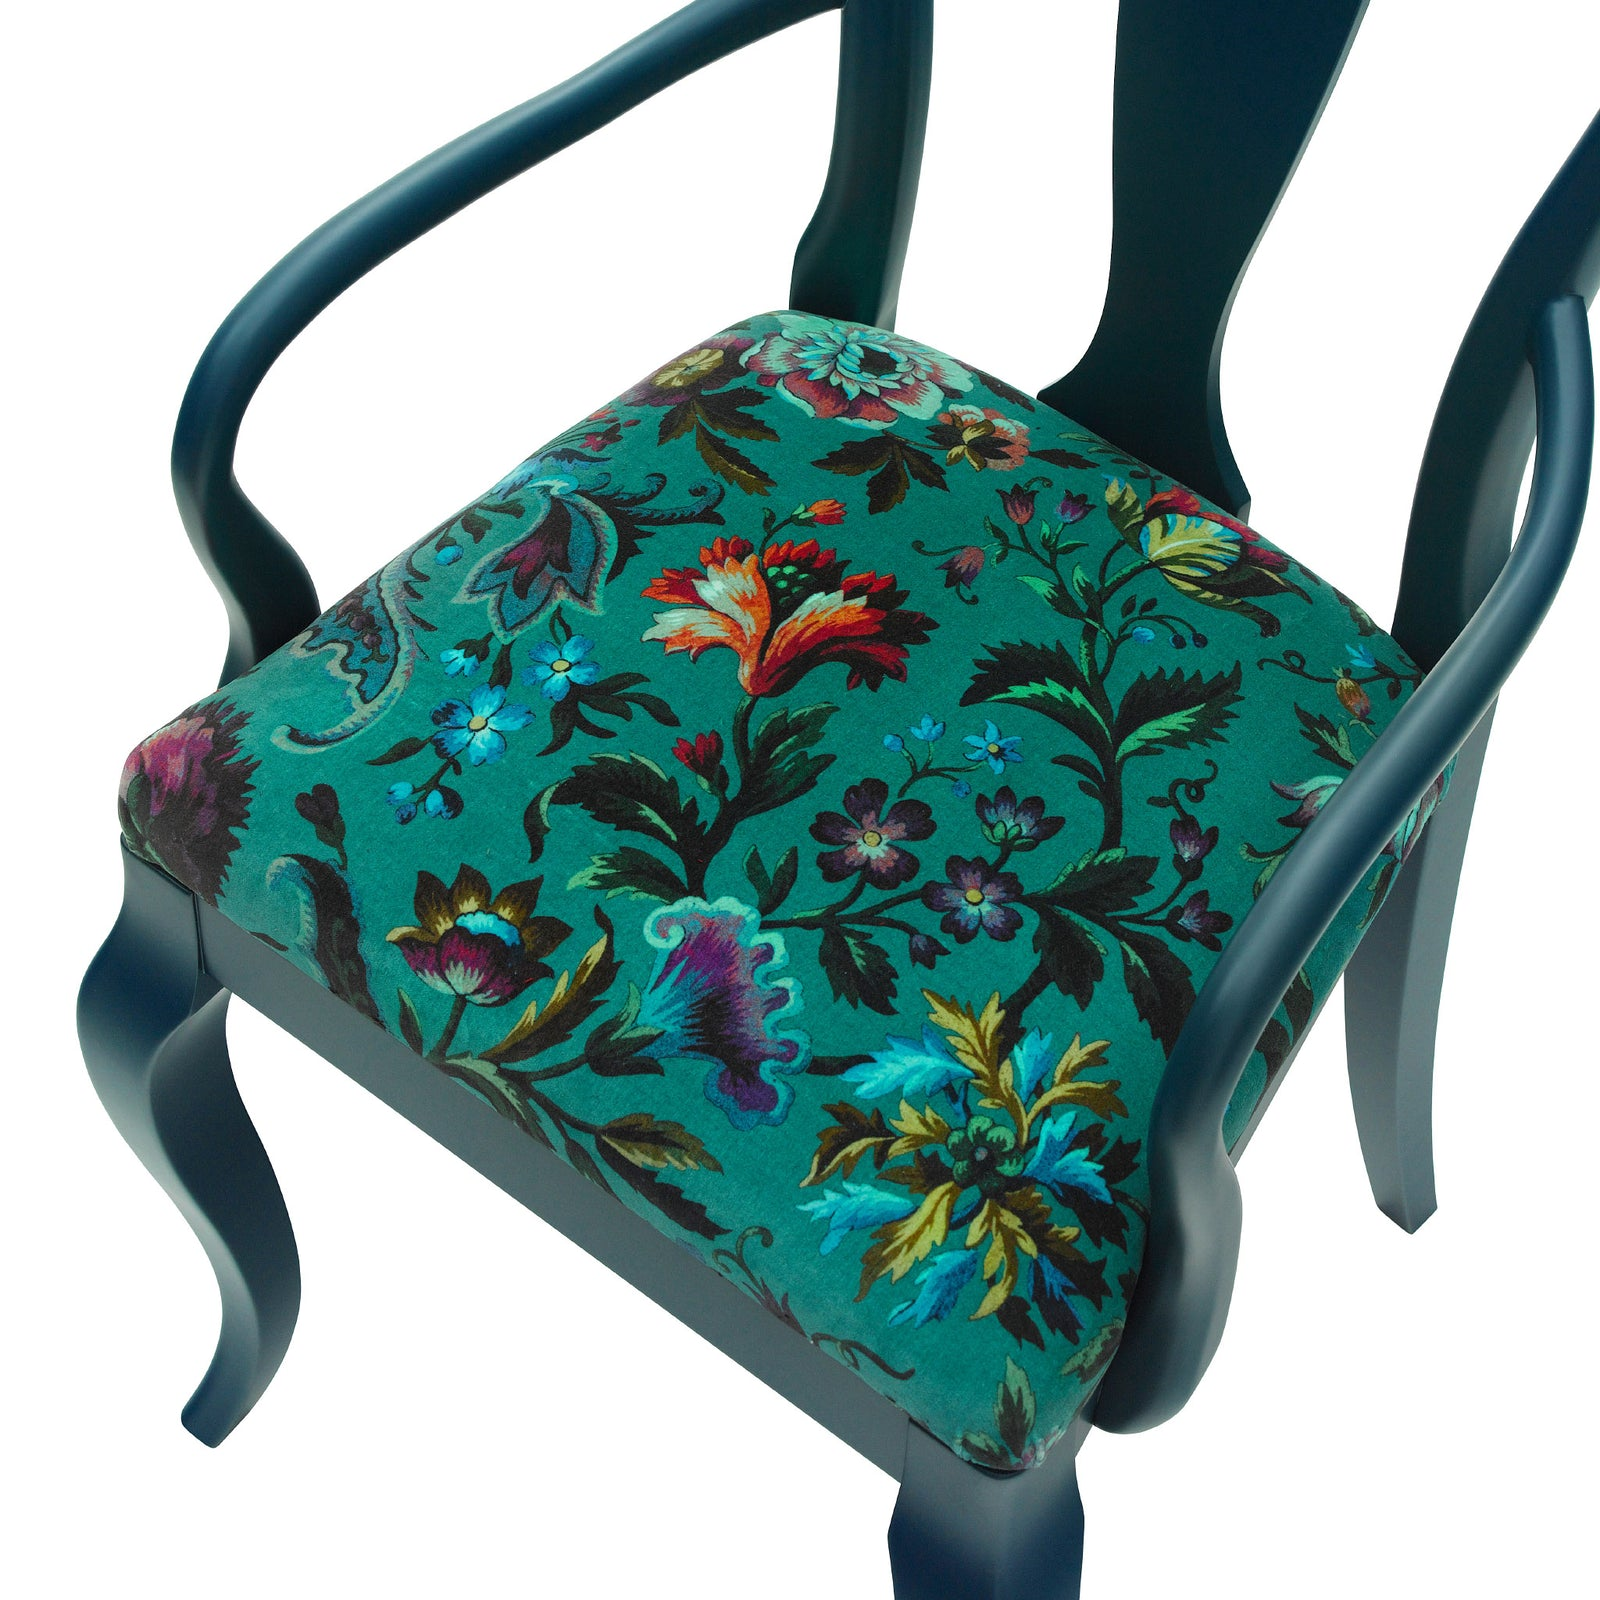 The Marco Chair Upholstered in Florika by House of Hackney finished in Hague Blue